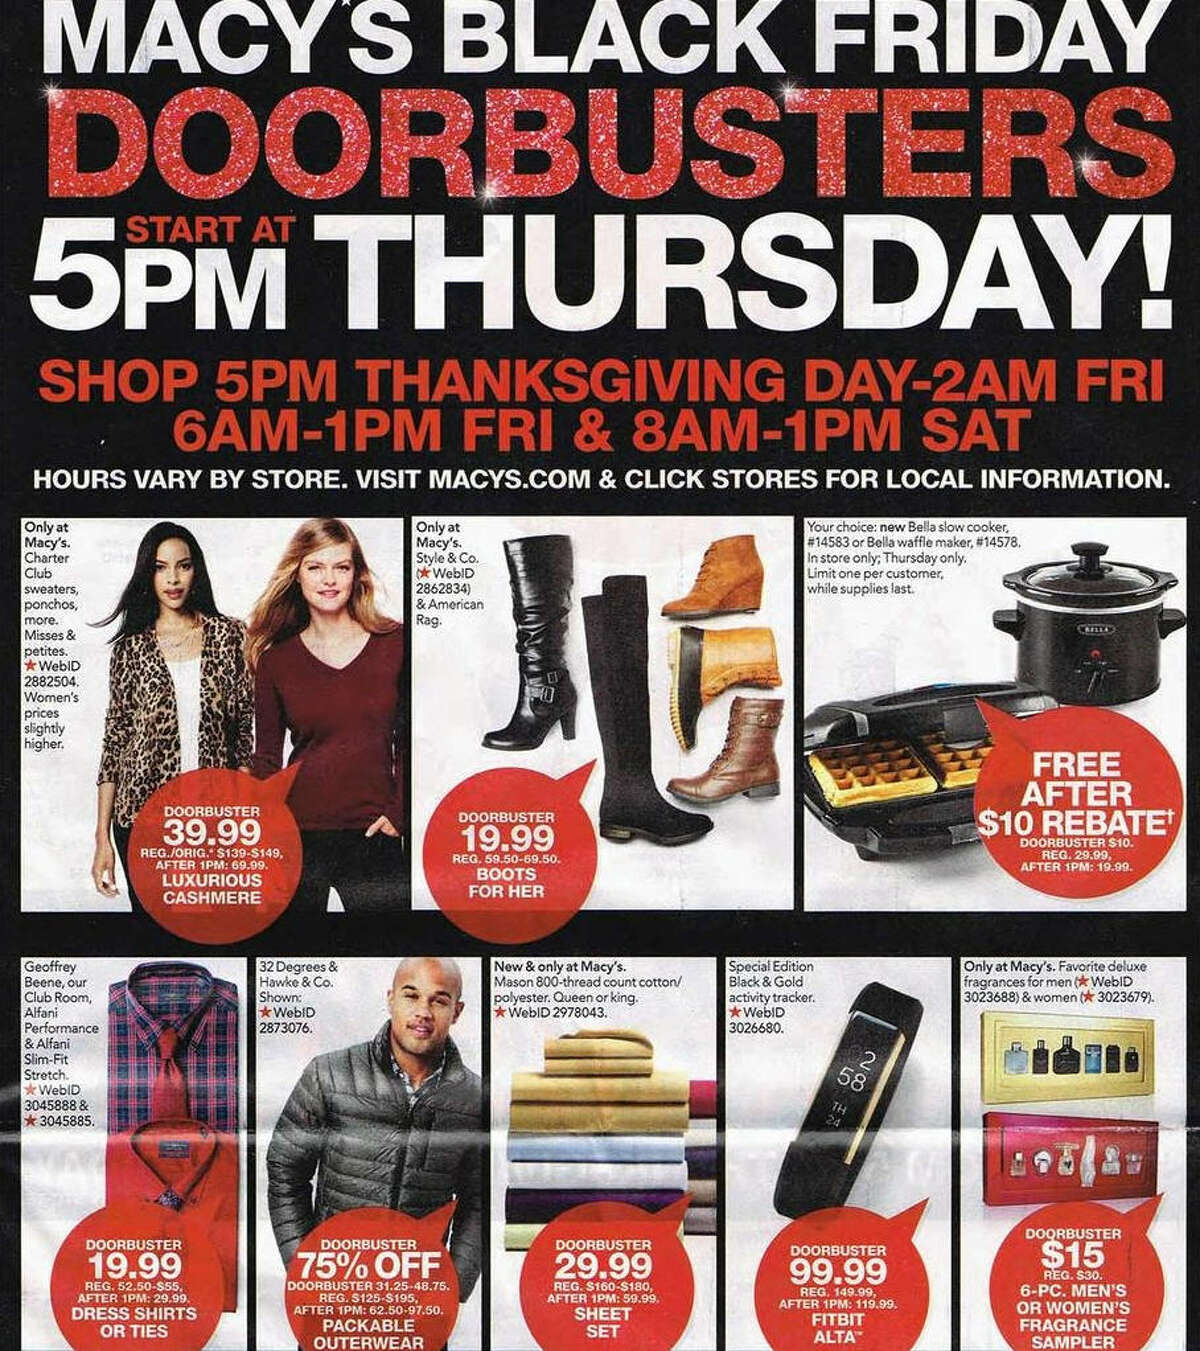 Macy's 2016 Black Friday ad circular was leaked ahead of its official release. The retail store's Doorbusters starts Thursday, Nov. 24 from 5 p.m. to 2 a.m. on Friday. Stores then close to reopen Friday at 6 a.m. to 1 p.m. Saturday morning the stores reopen at 8 a.m. to 1 p.m.